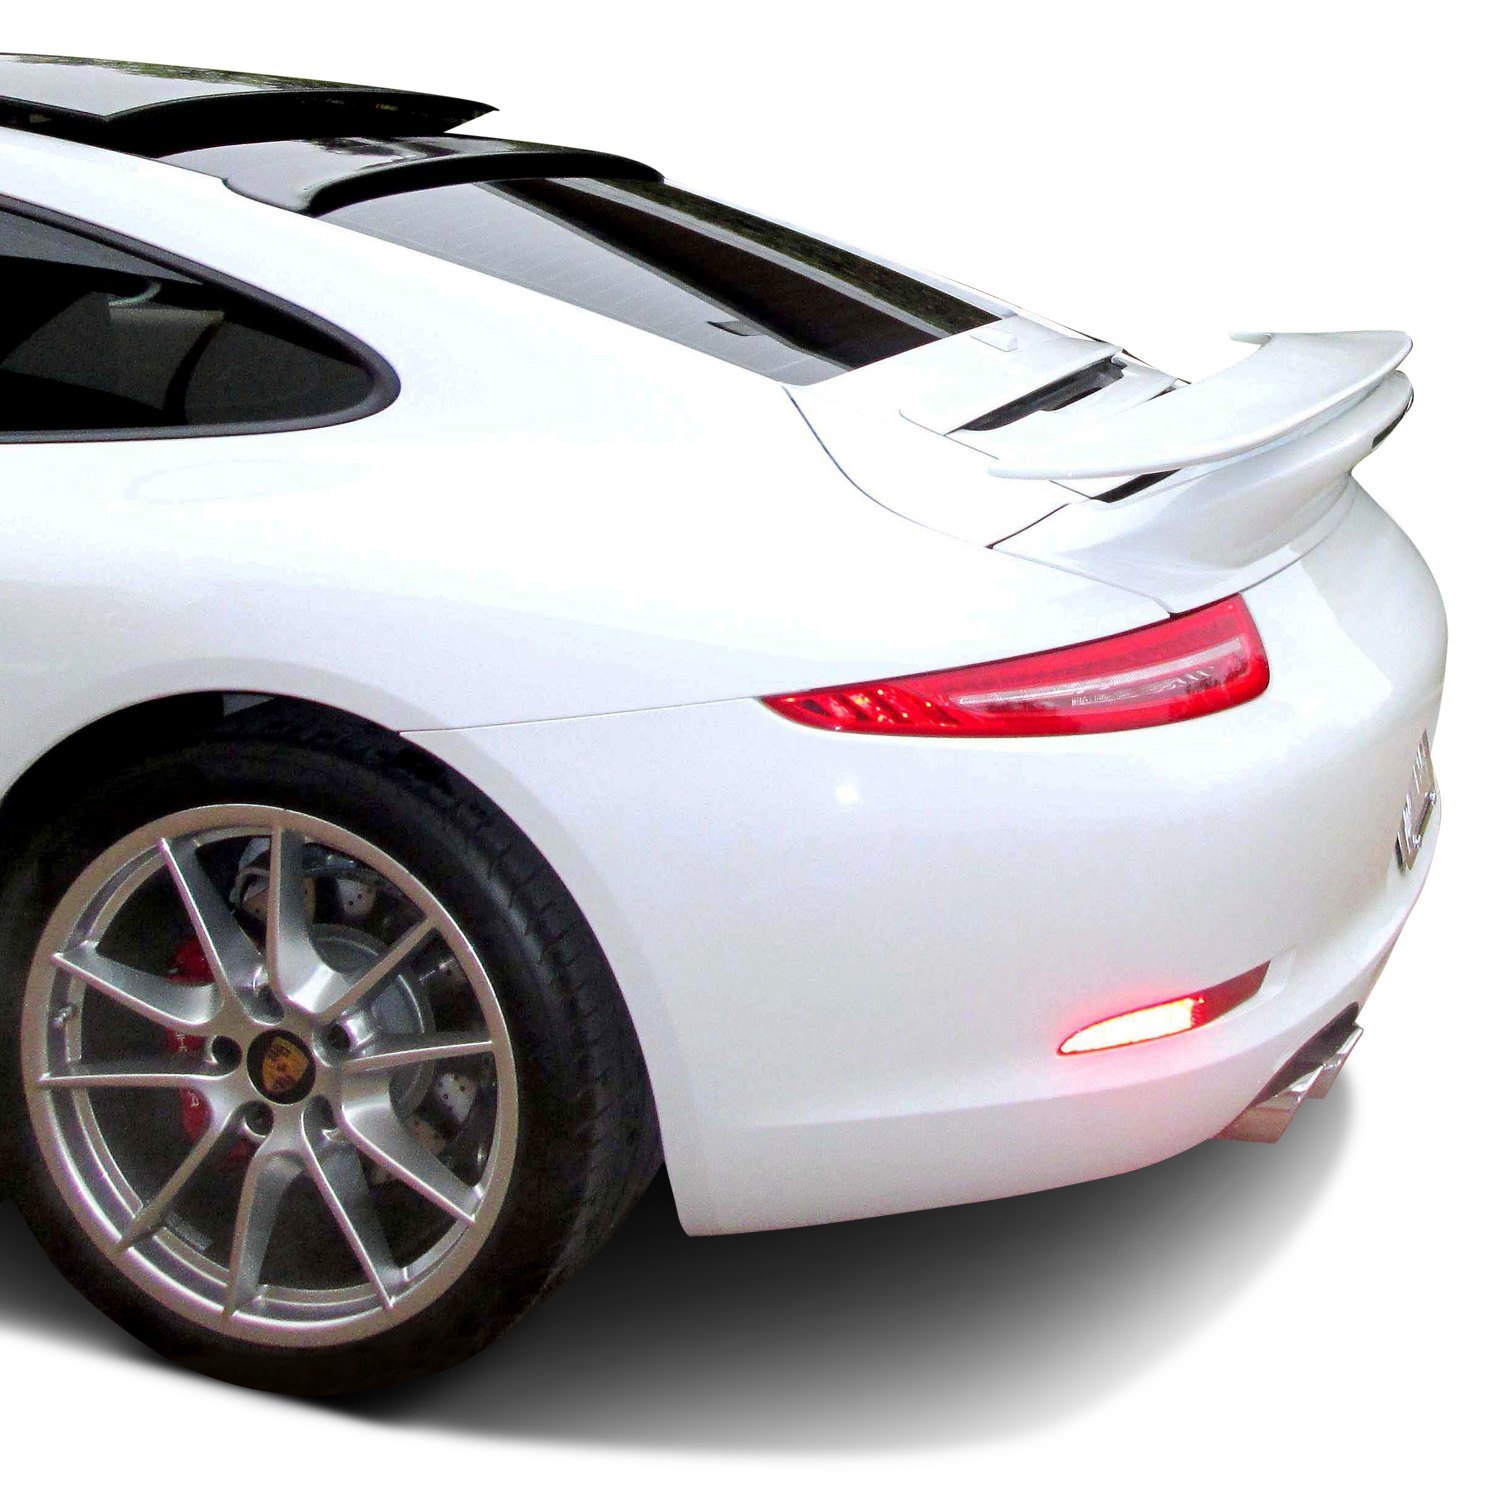 D2s 174 Porsche 911 Series Carrera 991 Body Code 2013 2017